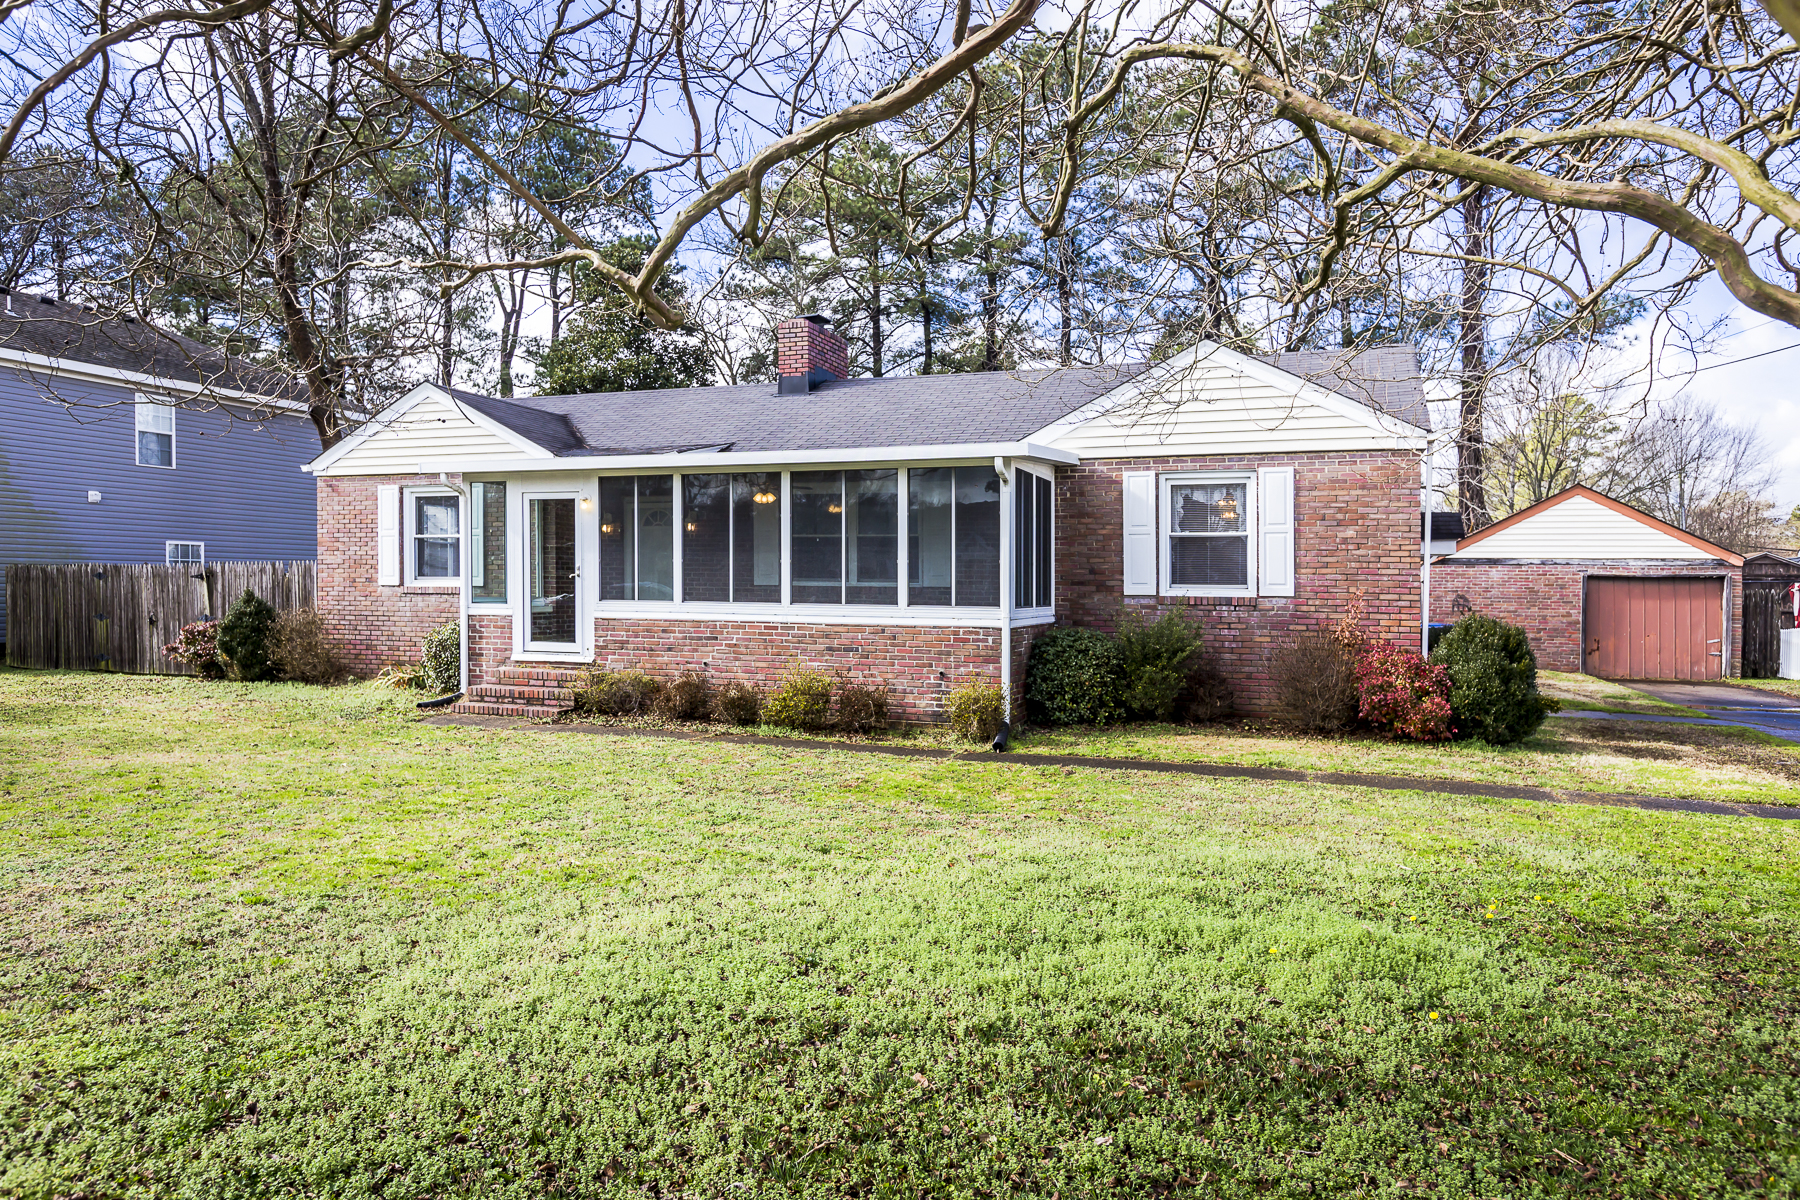 Single Family Home for Sale at 1125 Hawthorne 1125 Hawthorne Dr. Chesapeake, Virginia 23325 United States